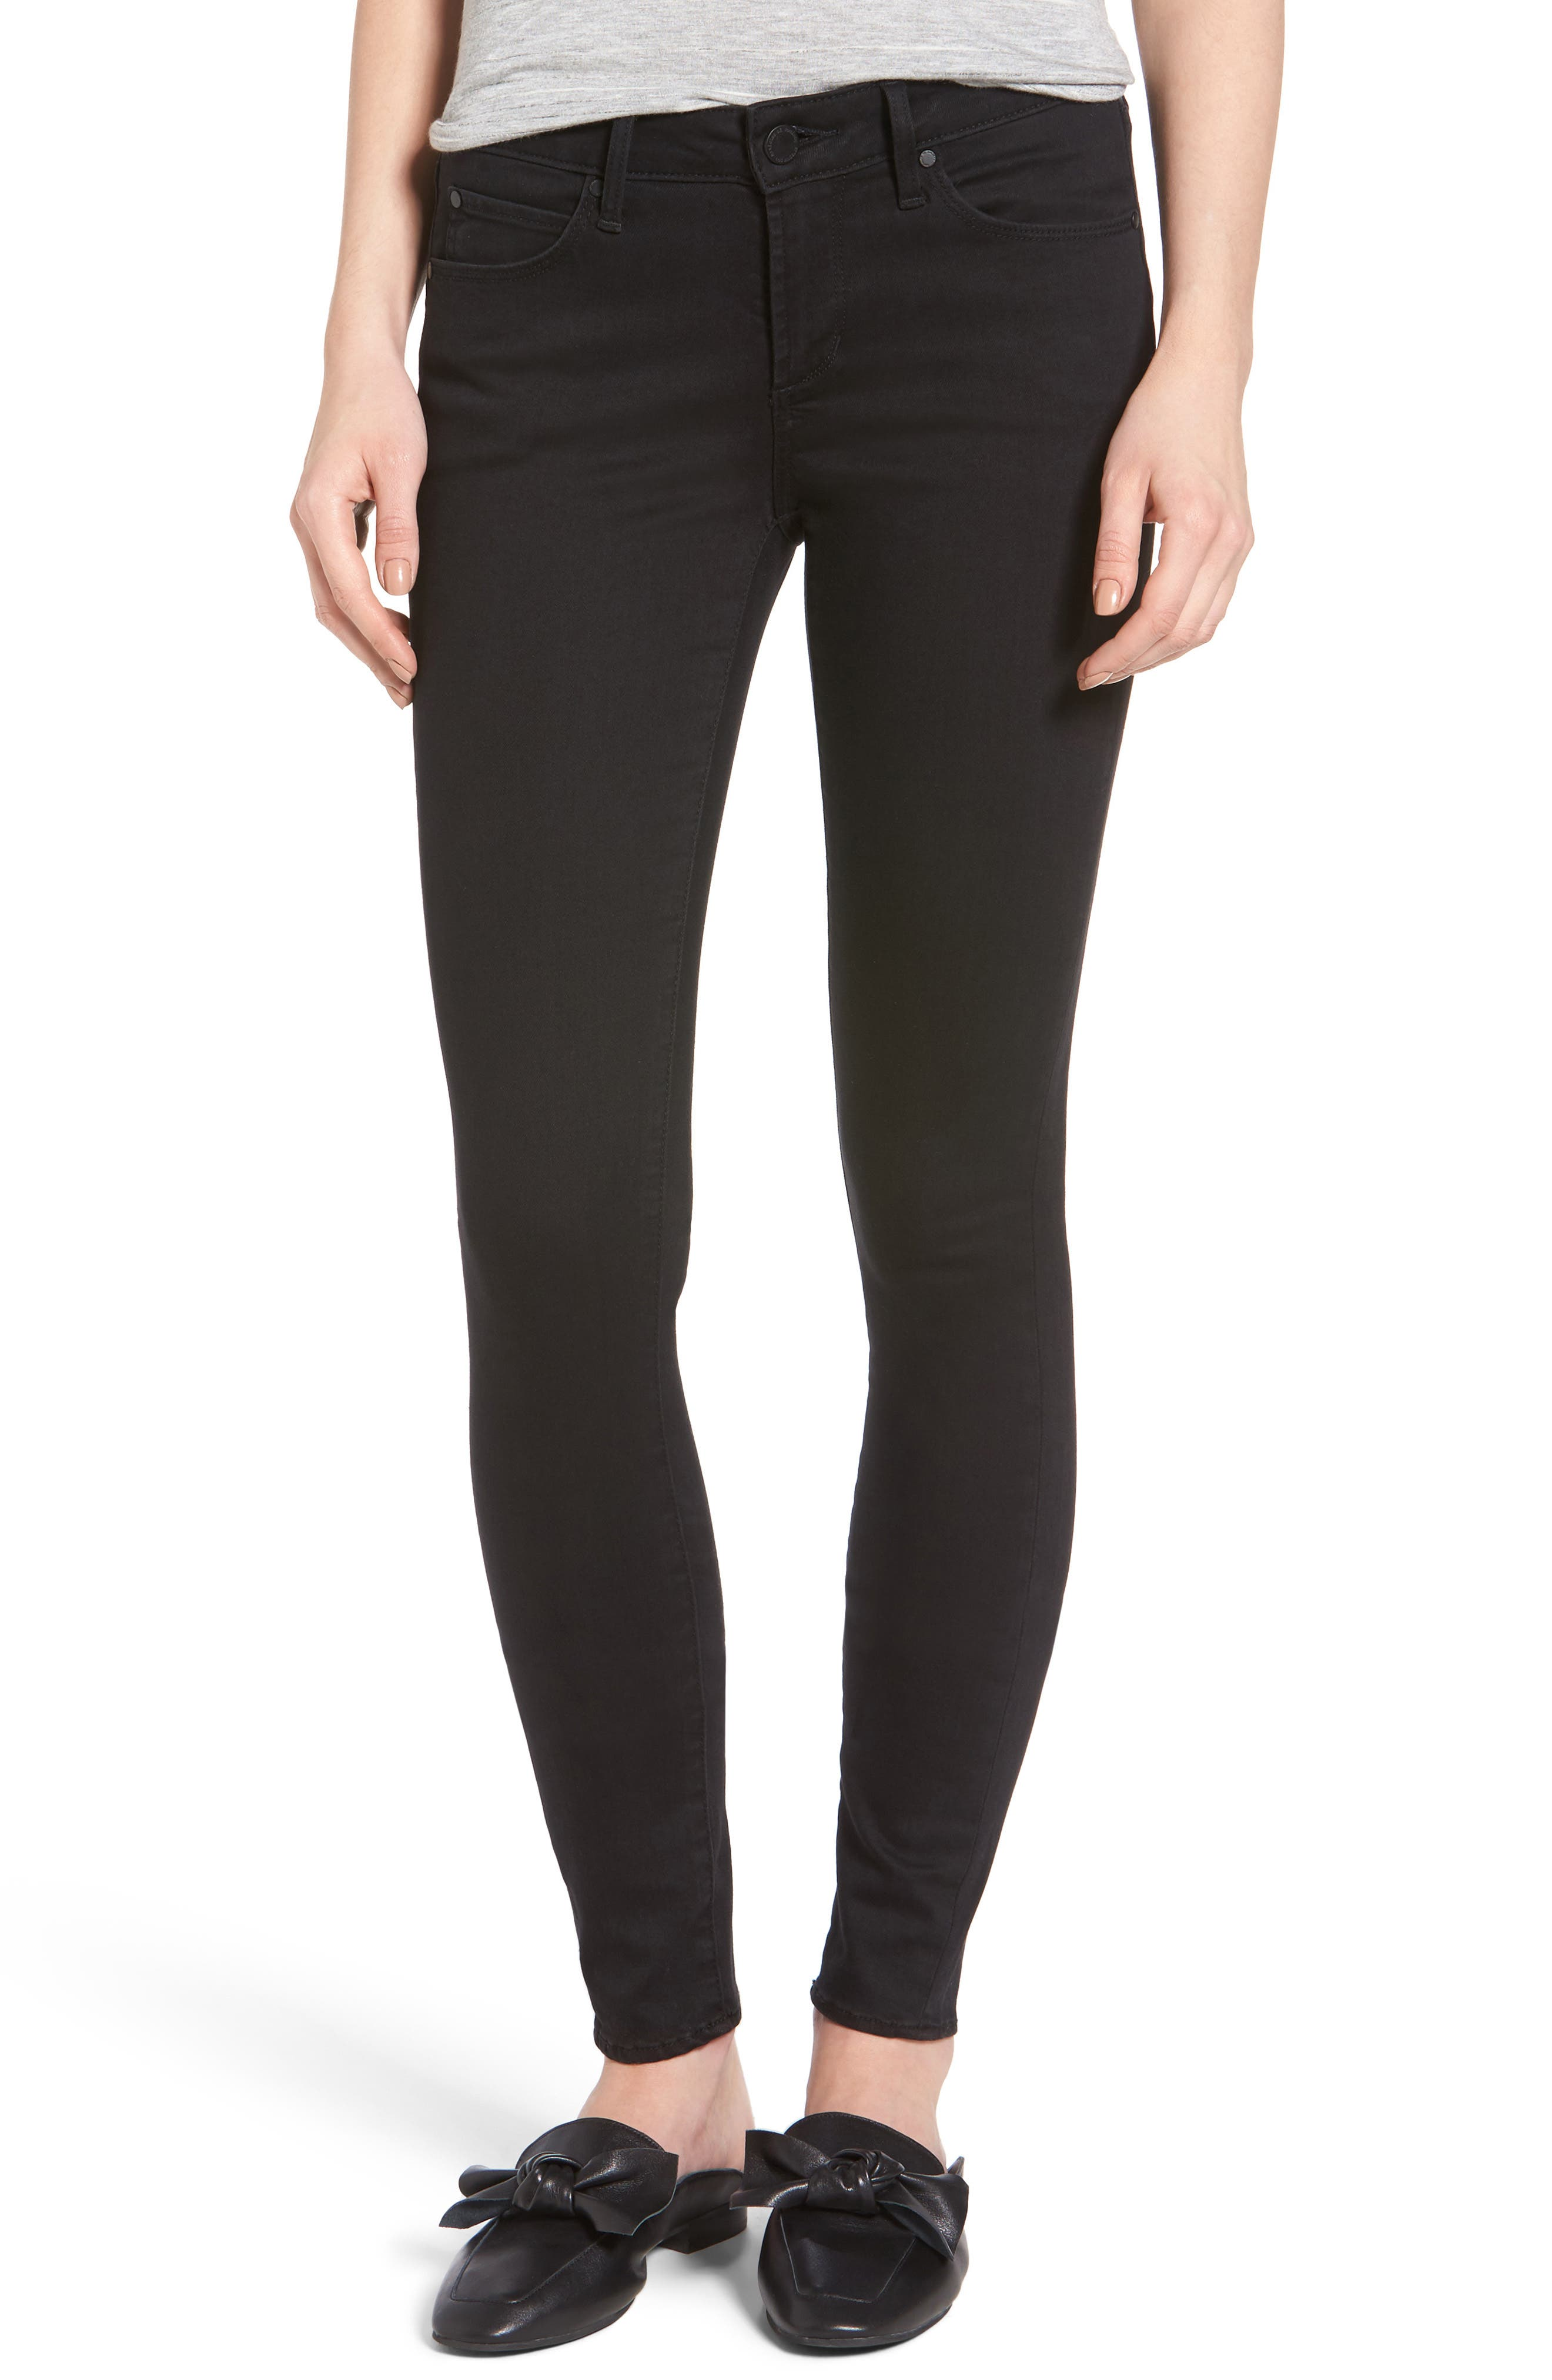 Articles of Society Mya Ankle Skinny Jeans (Blackhawk)